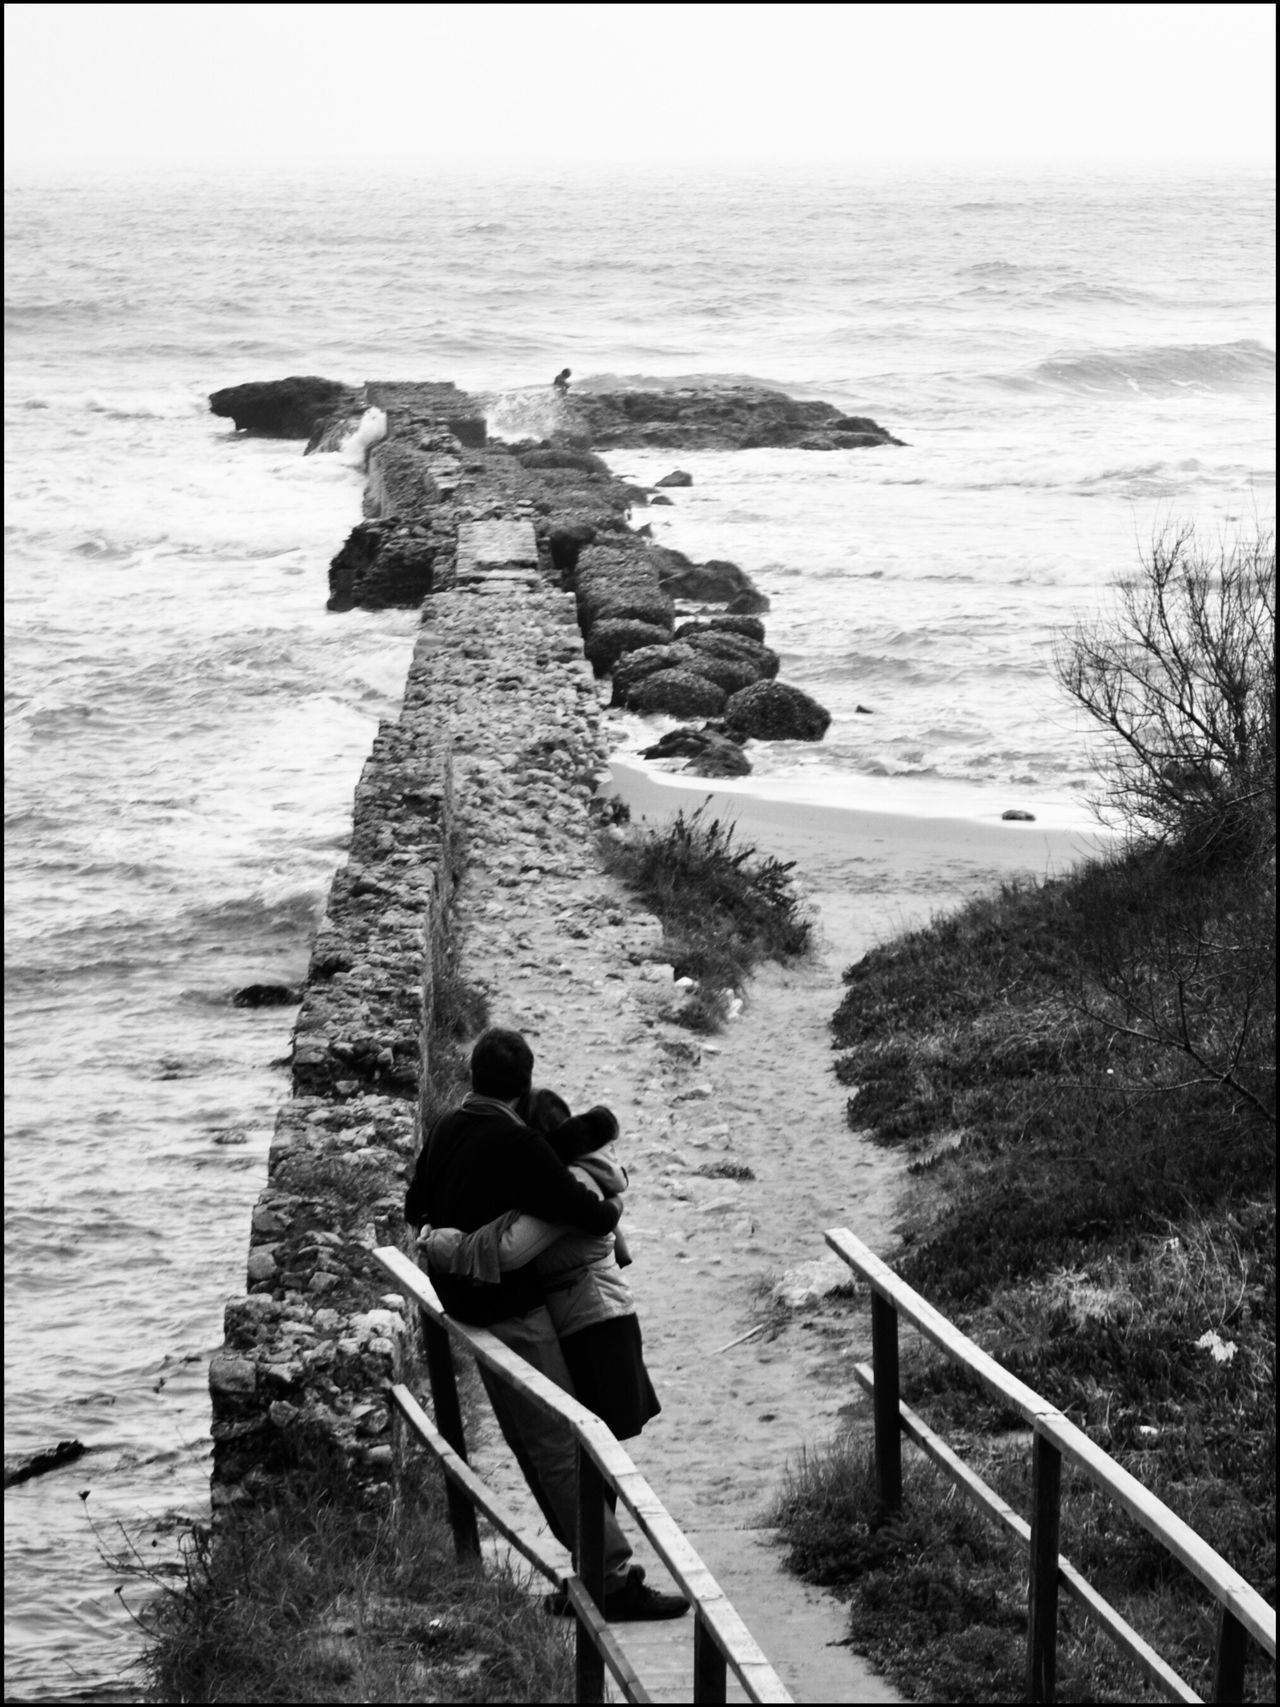 .un romantico mare d'inverno. Saporetti, Sabaudia | Italy Sky Sea Eye4photography  EyeEm Best Edits Monochrome Photography Real People Nature Day Beauty In Nature Tranquil Scene Beach Blackandwhite Bws_worldwide Bw_collection Great Atmosphere EyeEm Bnw Street Photography Streetphotography Street Life Streetphoto Beauty In Nature EyeEm Bestsellers Water